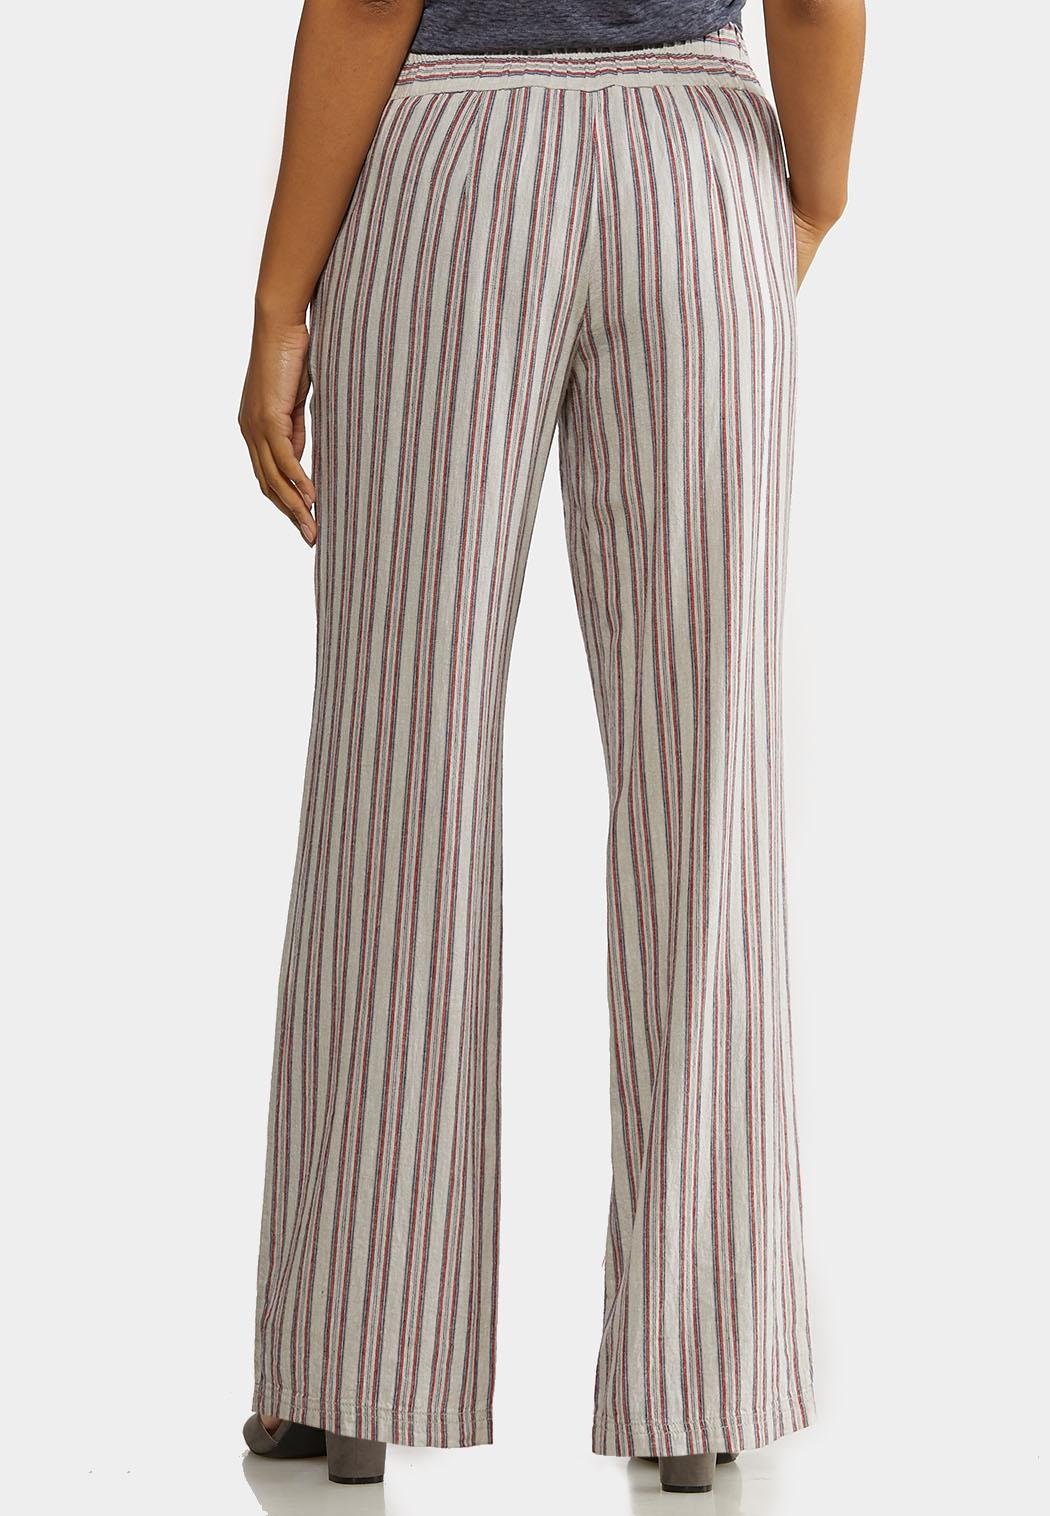 Americana Striped Pants (Item #44233716)